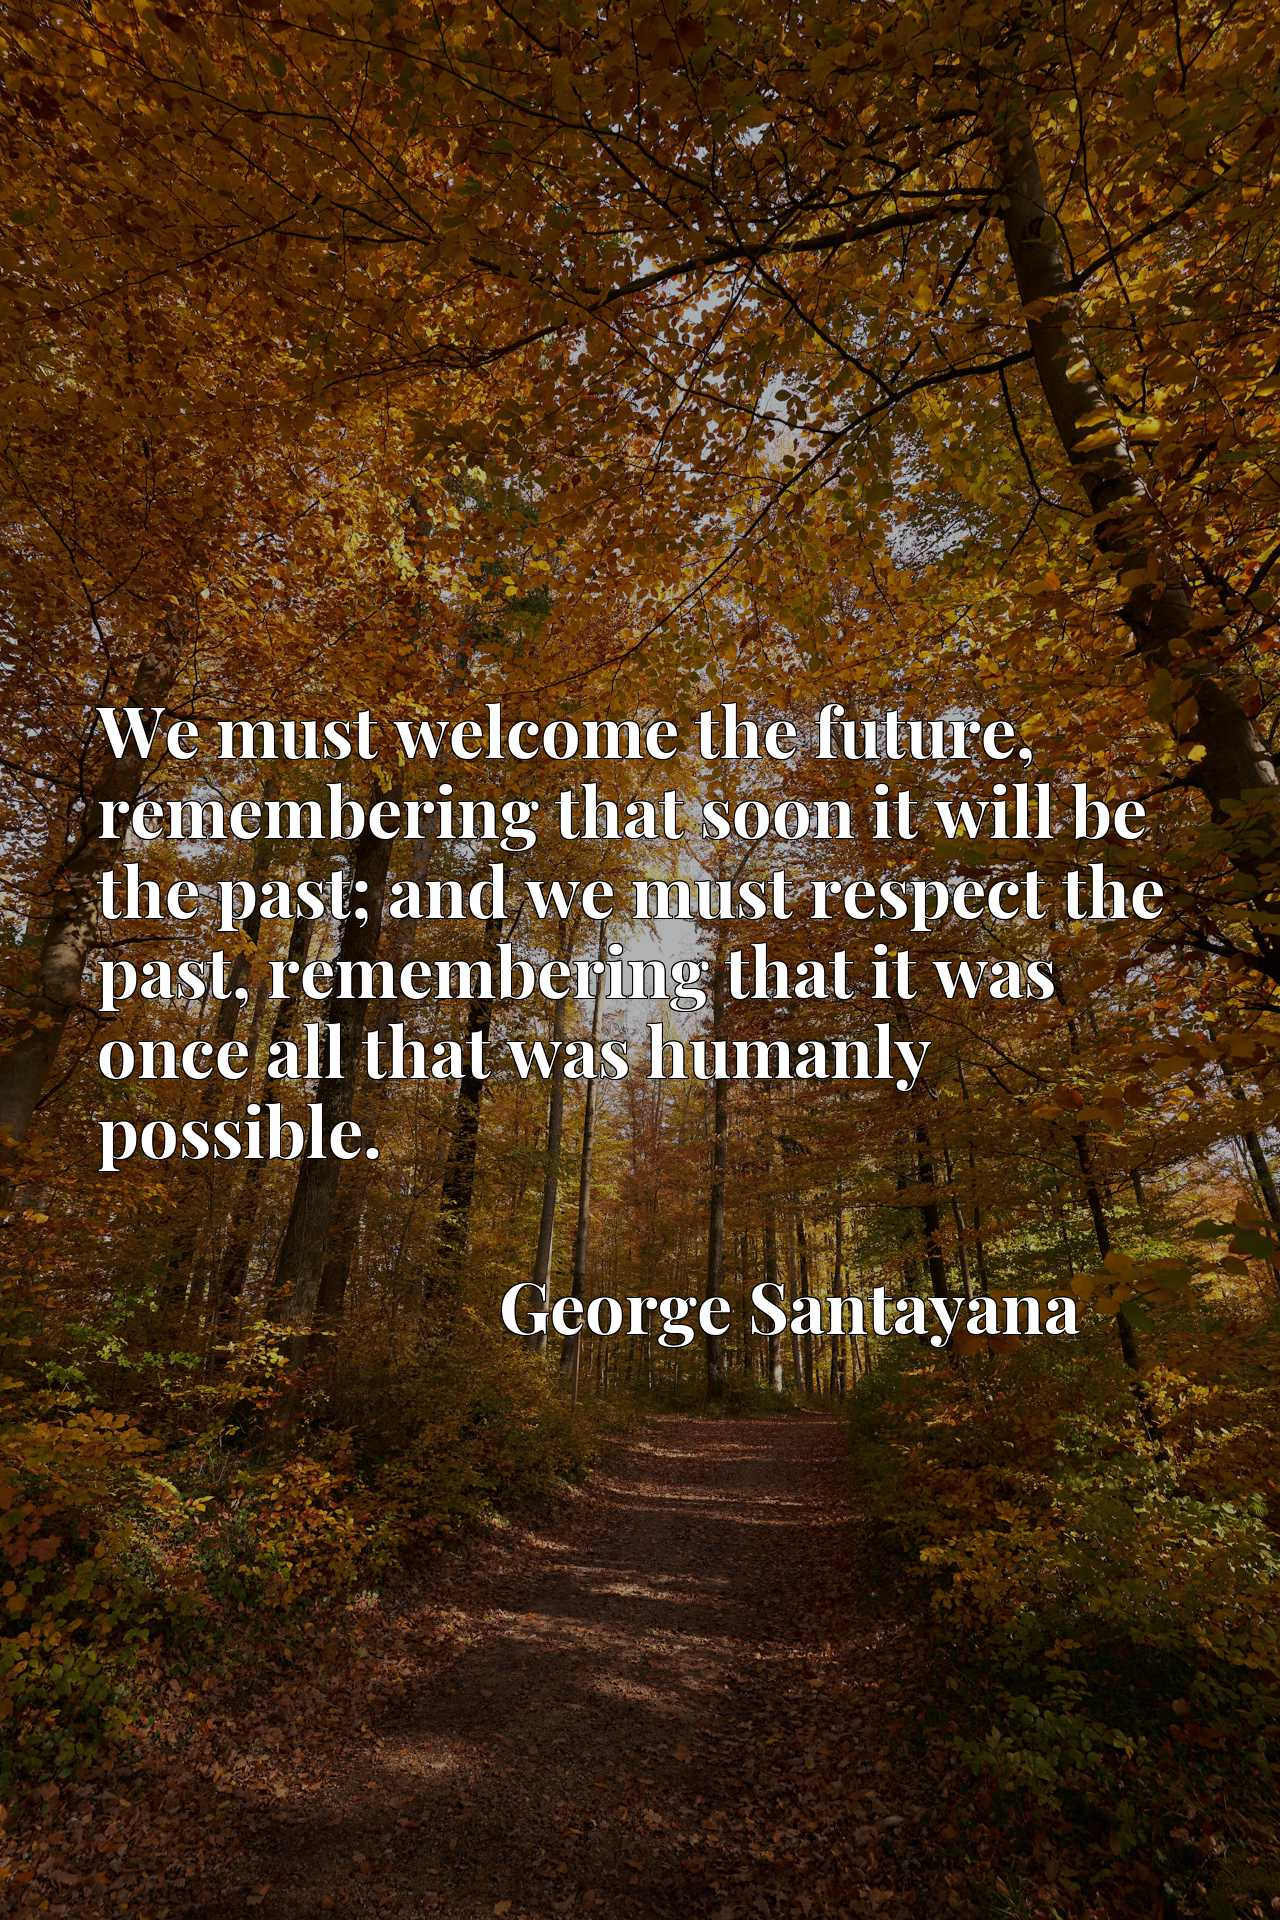 We must welcome the future, remembering that soon it will be the past; and we must respect the past, remembering that it was once all that was humanly possible.